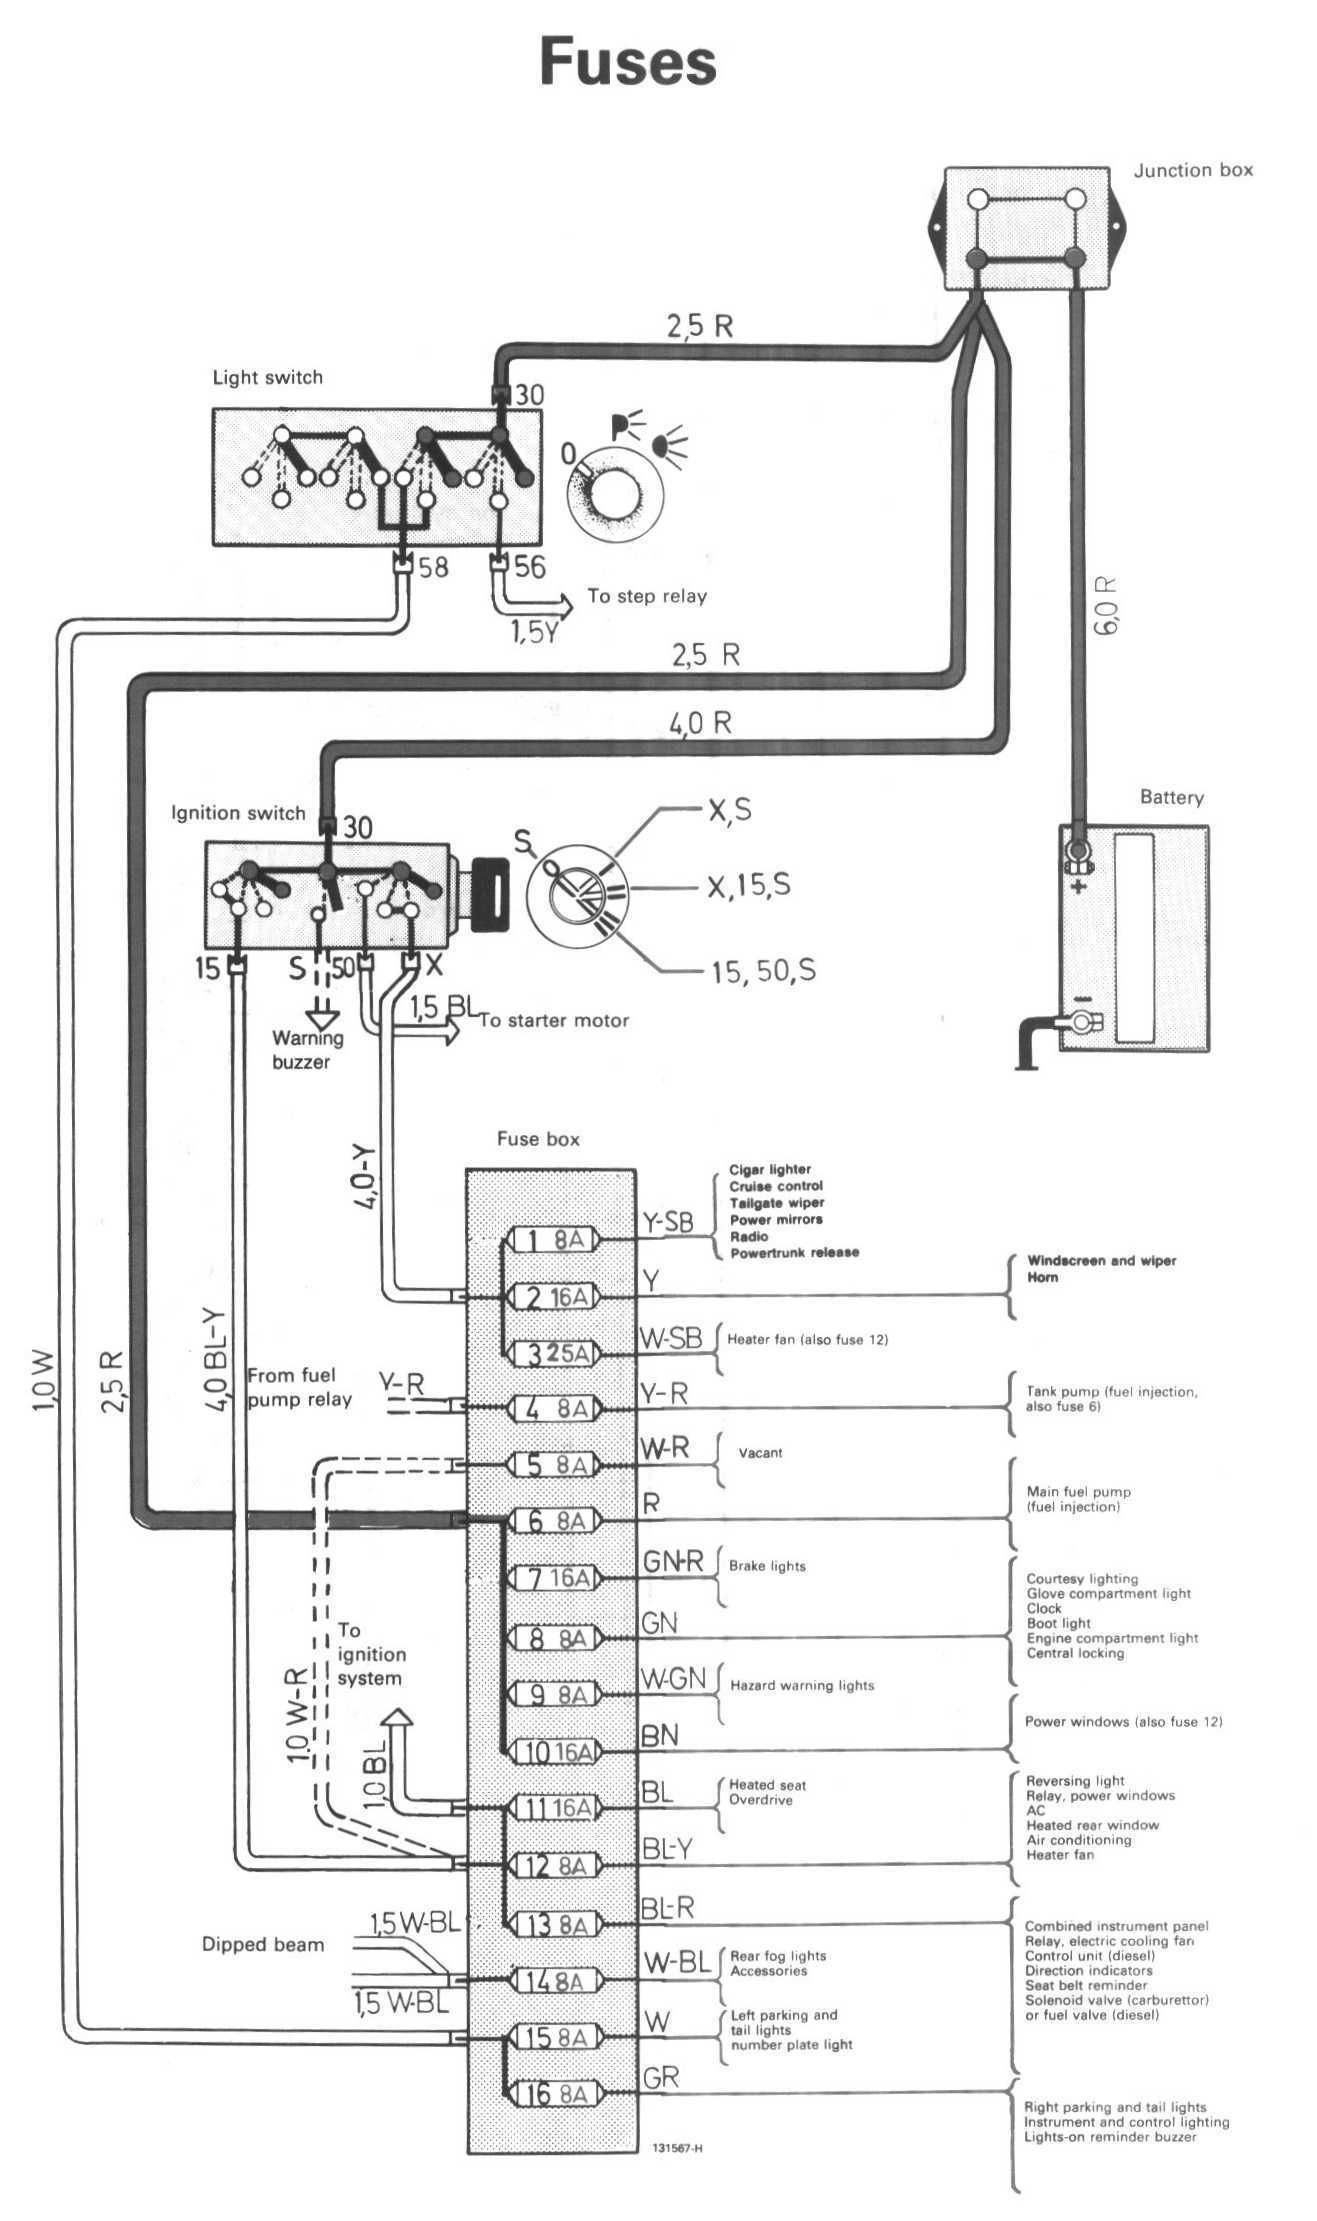 [WQZT_9871]  240 Volvo: I am missing the fuse diagram | Volvo, Fuse box, Volvo 240 | Volvo Semi Truck Wiring Diagram |  | Pinterest